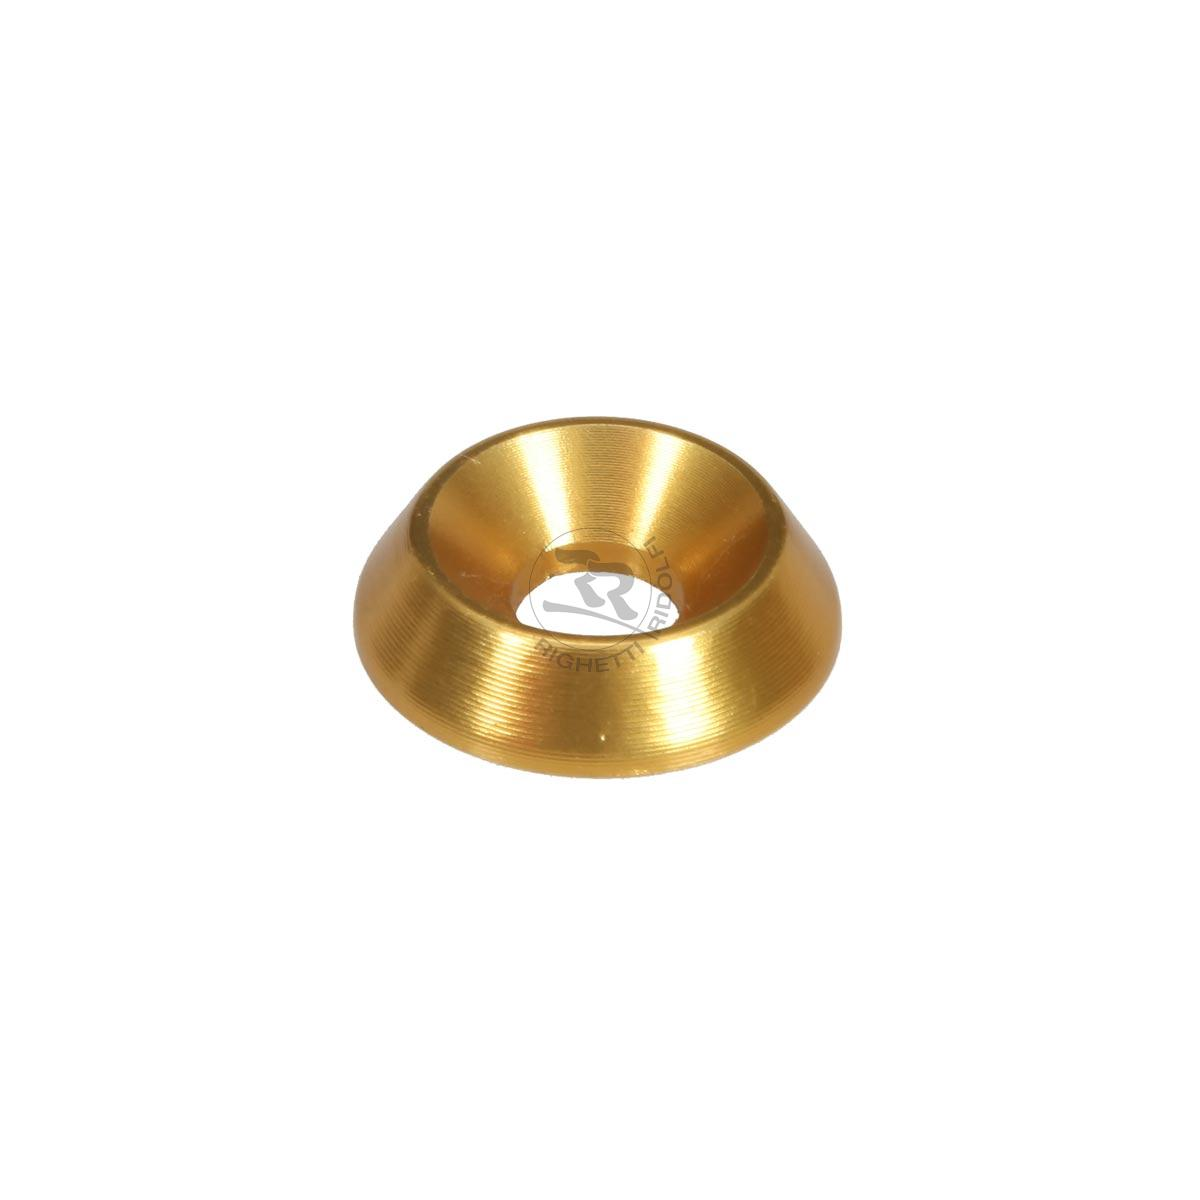 ALUMINIUM COUNTERSUNK WASHER 18 x 6mm, GOLD ANODIZED